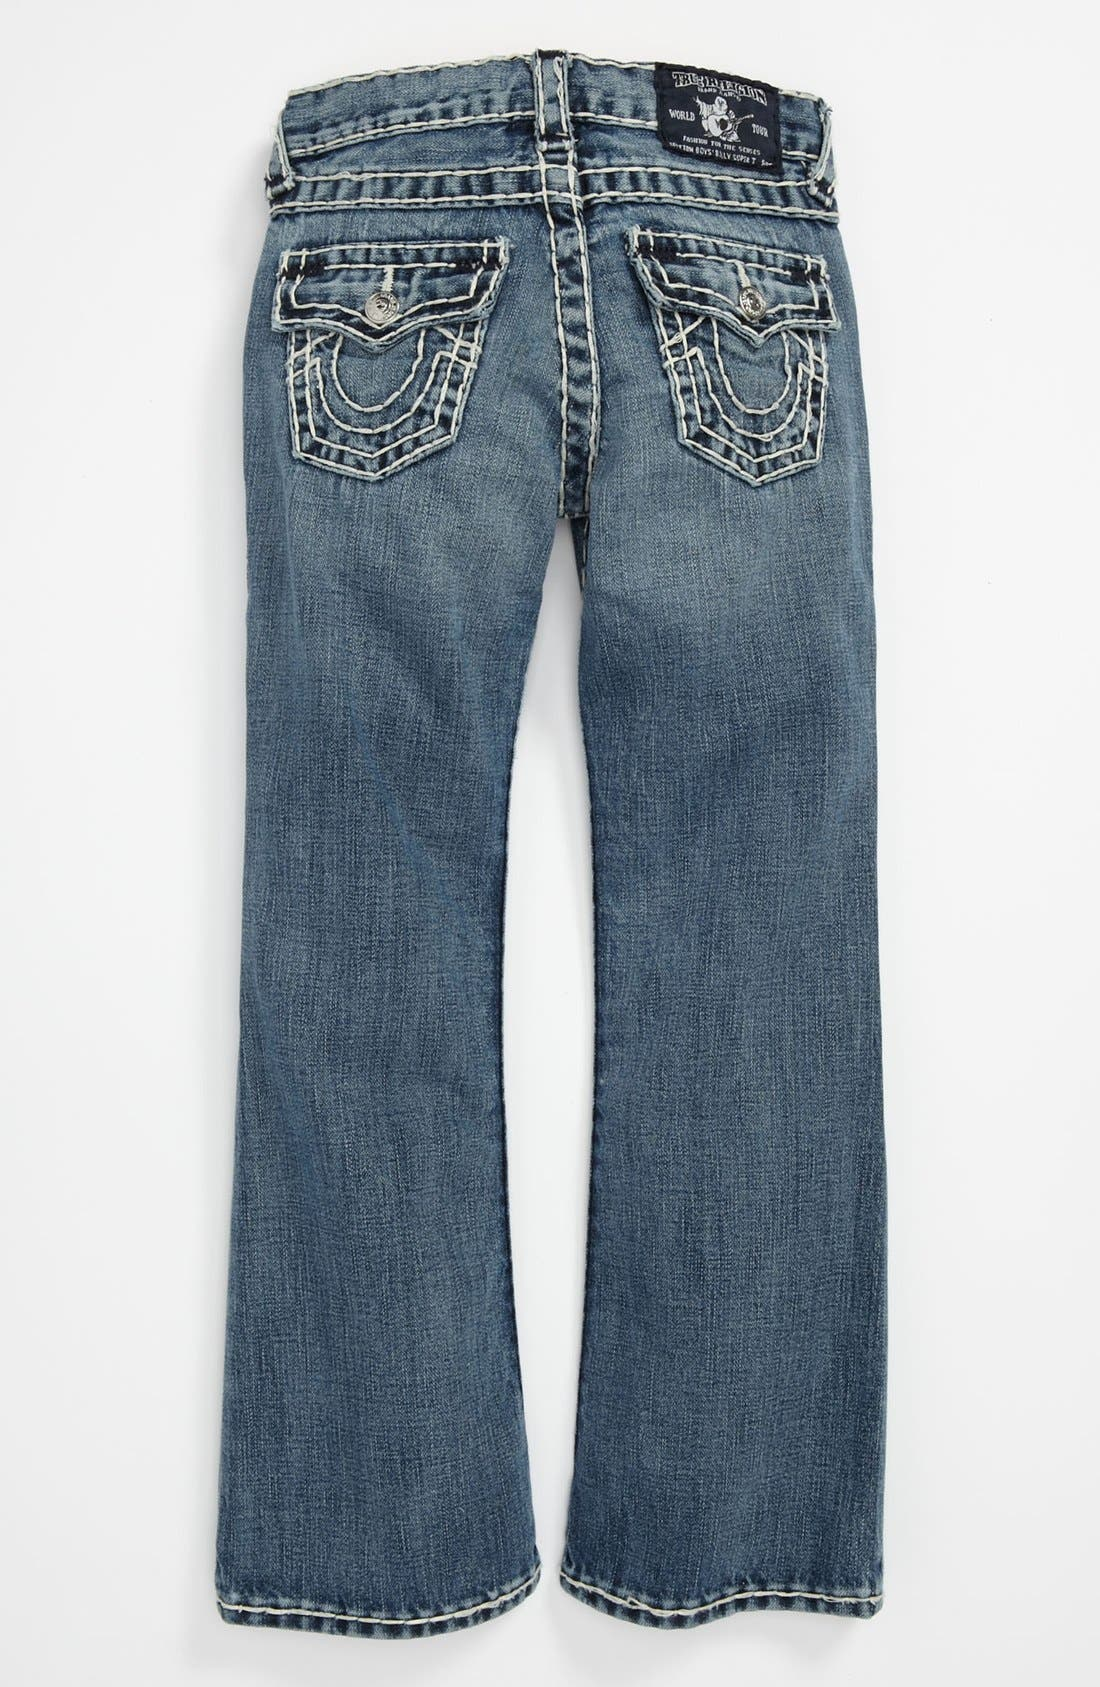 Main Image - True Religion Brand Jeans 'Billy Super T' Jeans (Little Boys)